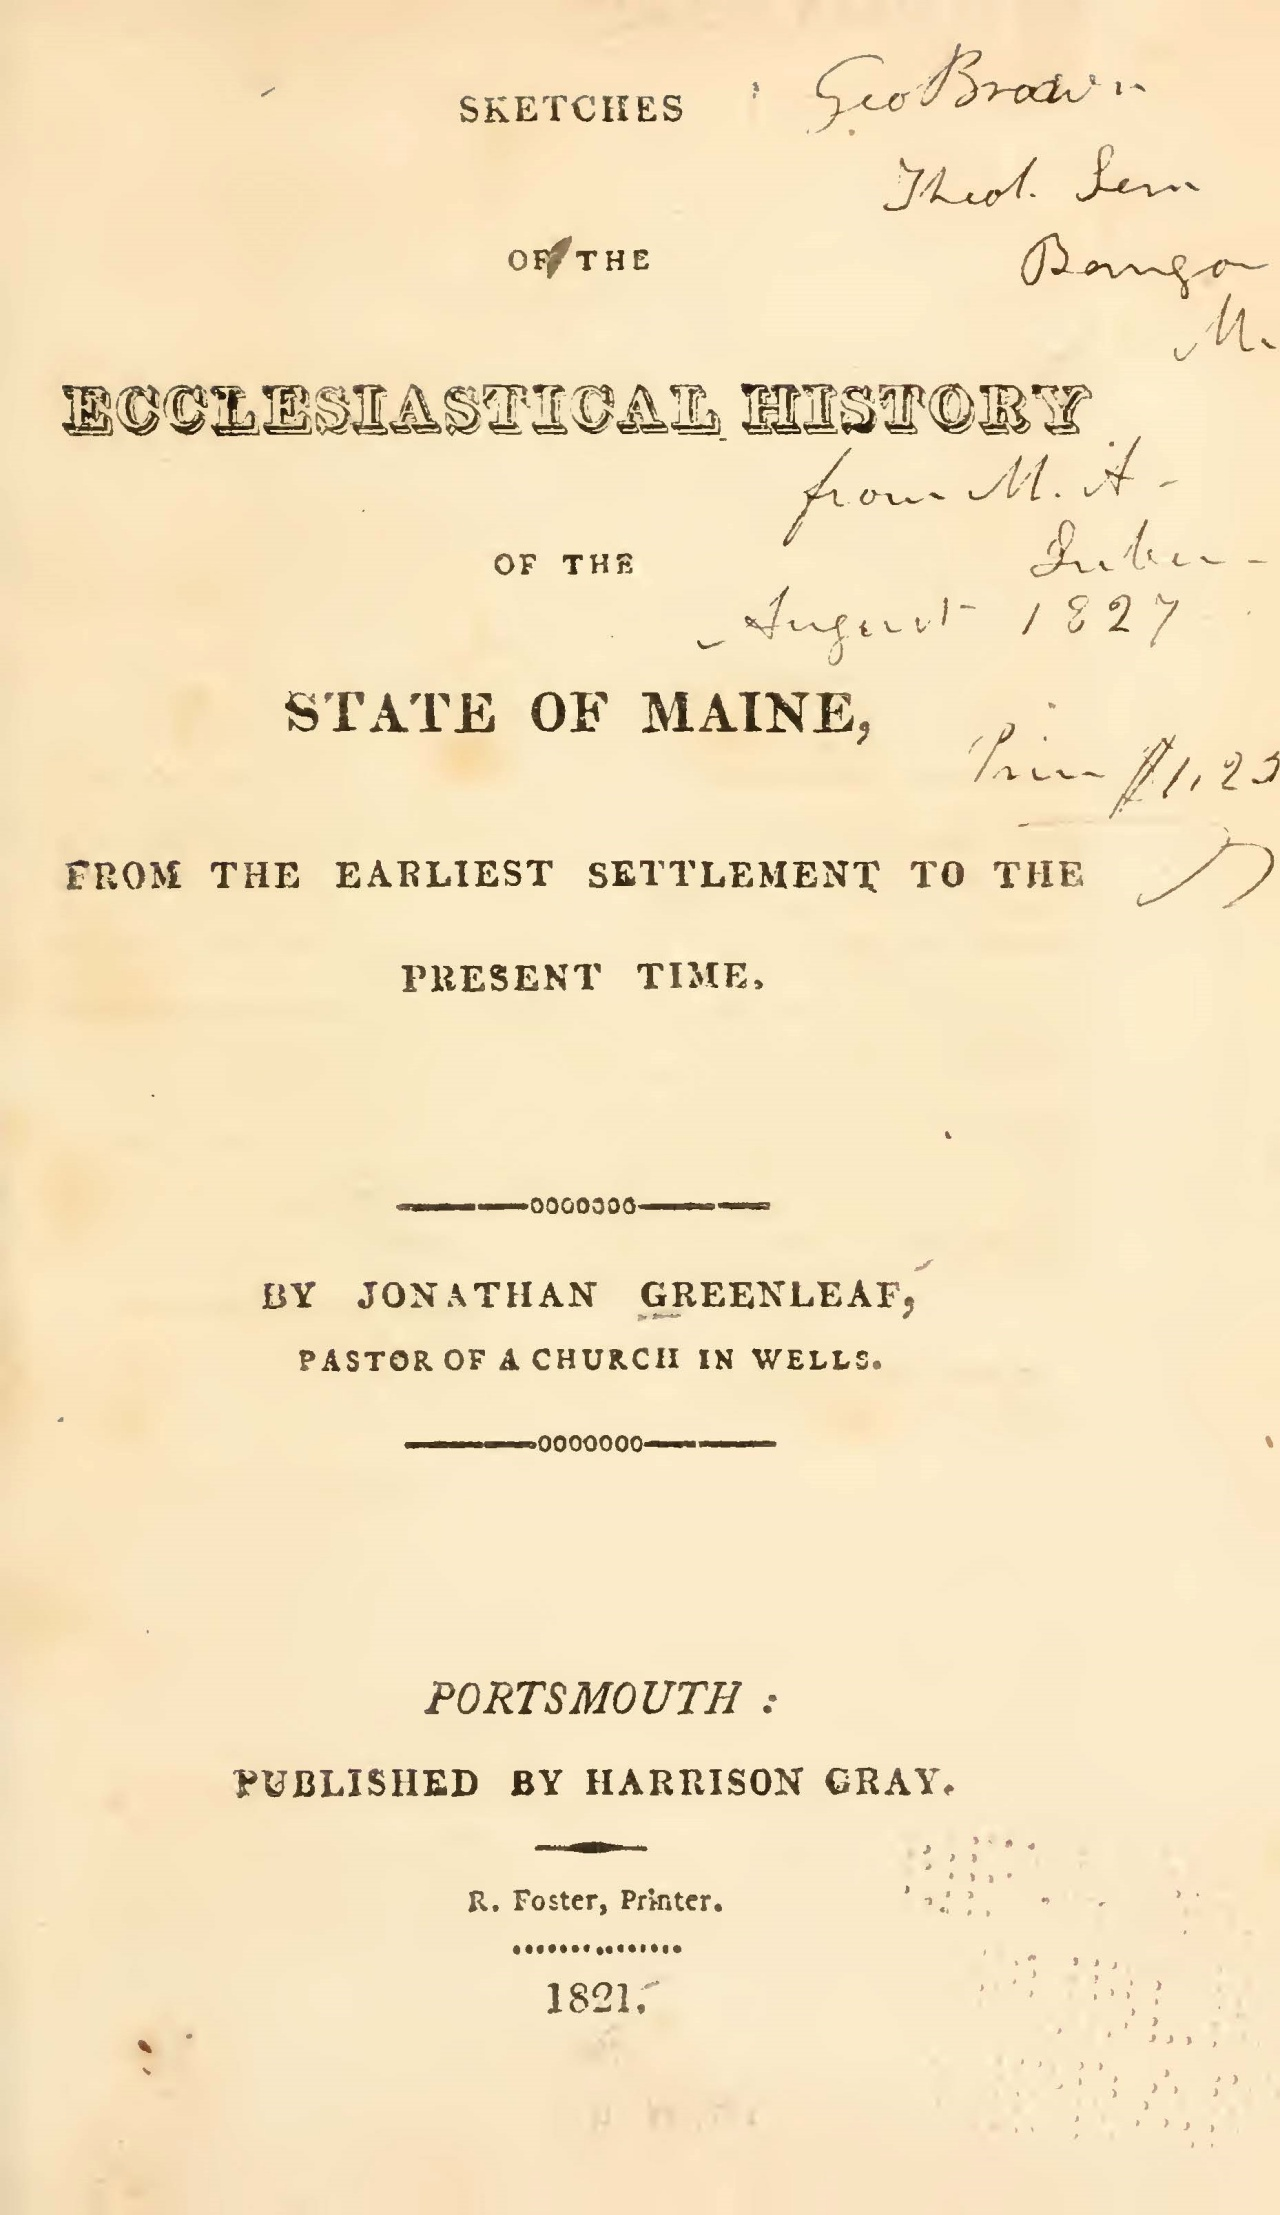 Greenleaf, Jonathan, Sketches of the Ecclesiastical History of the State of Maine Title Page.jpg